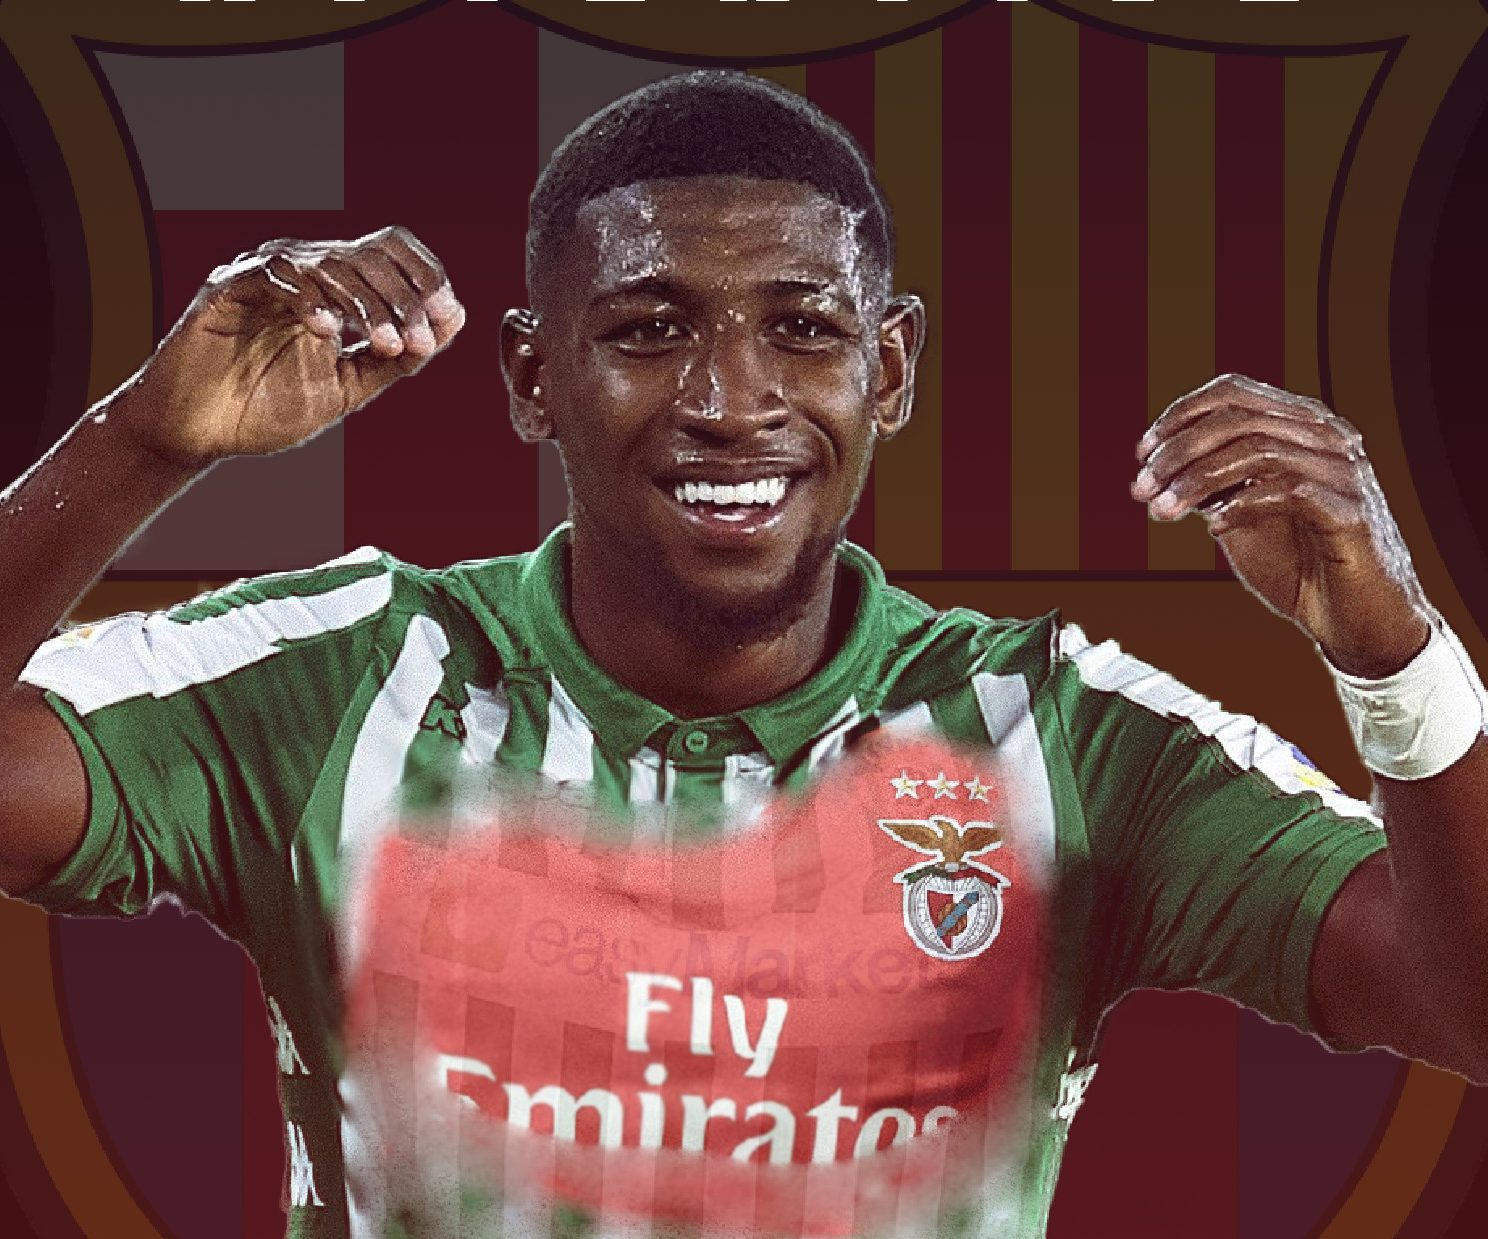 Emerson, co-owned by Barcelona and Betis, has attracted interest from several clubs, including Benfica / Photo montage by Blaugranagram